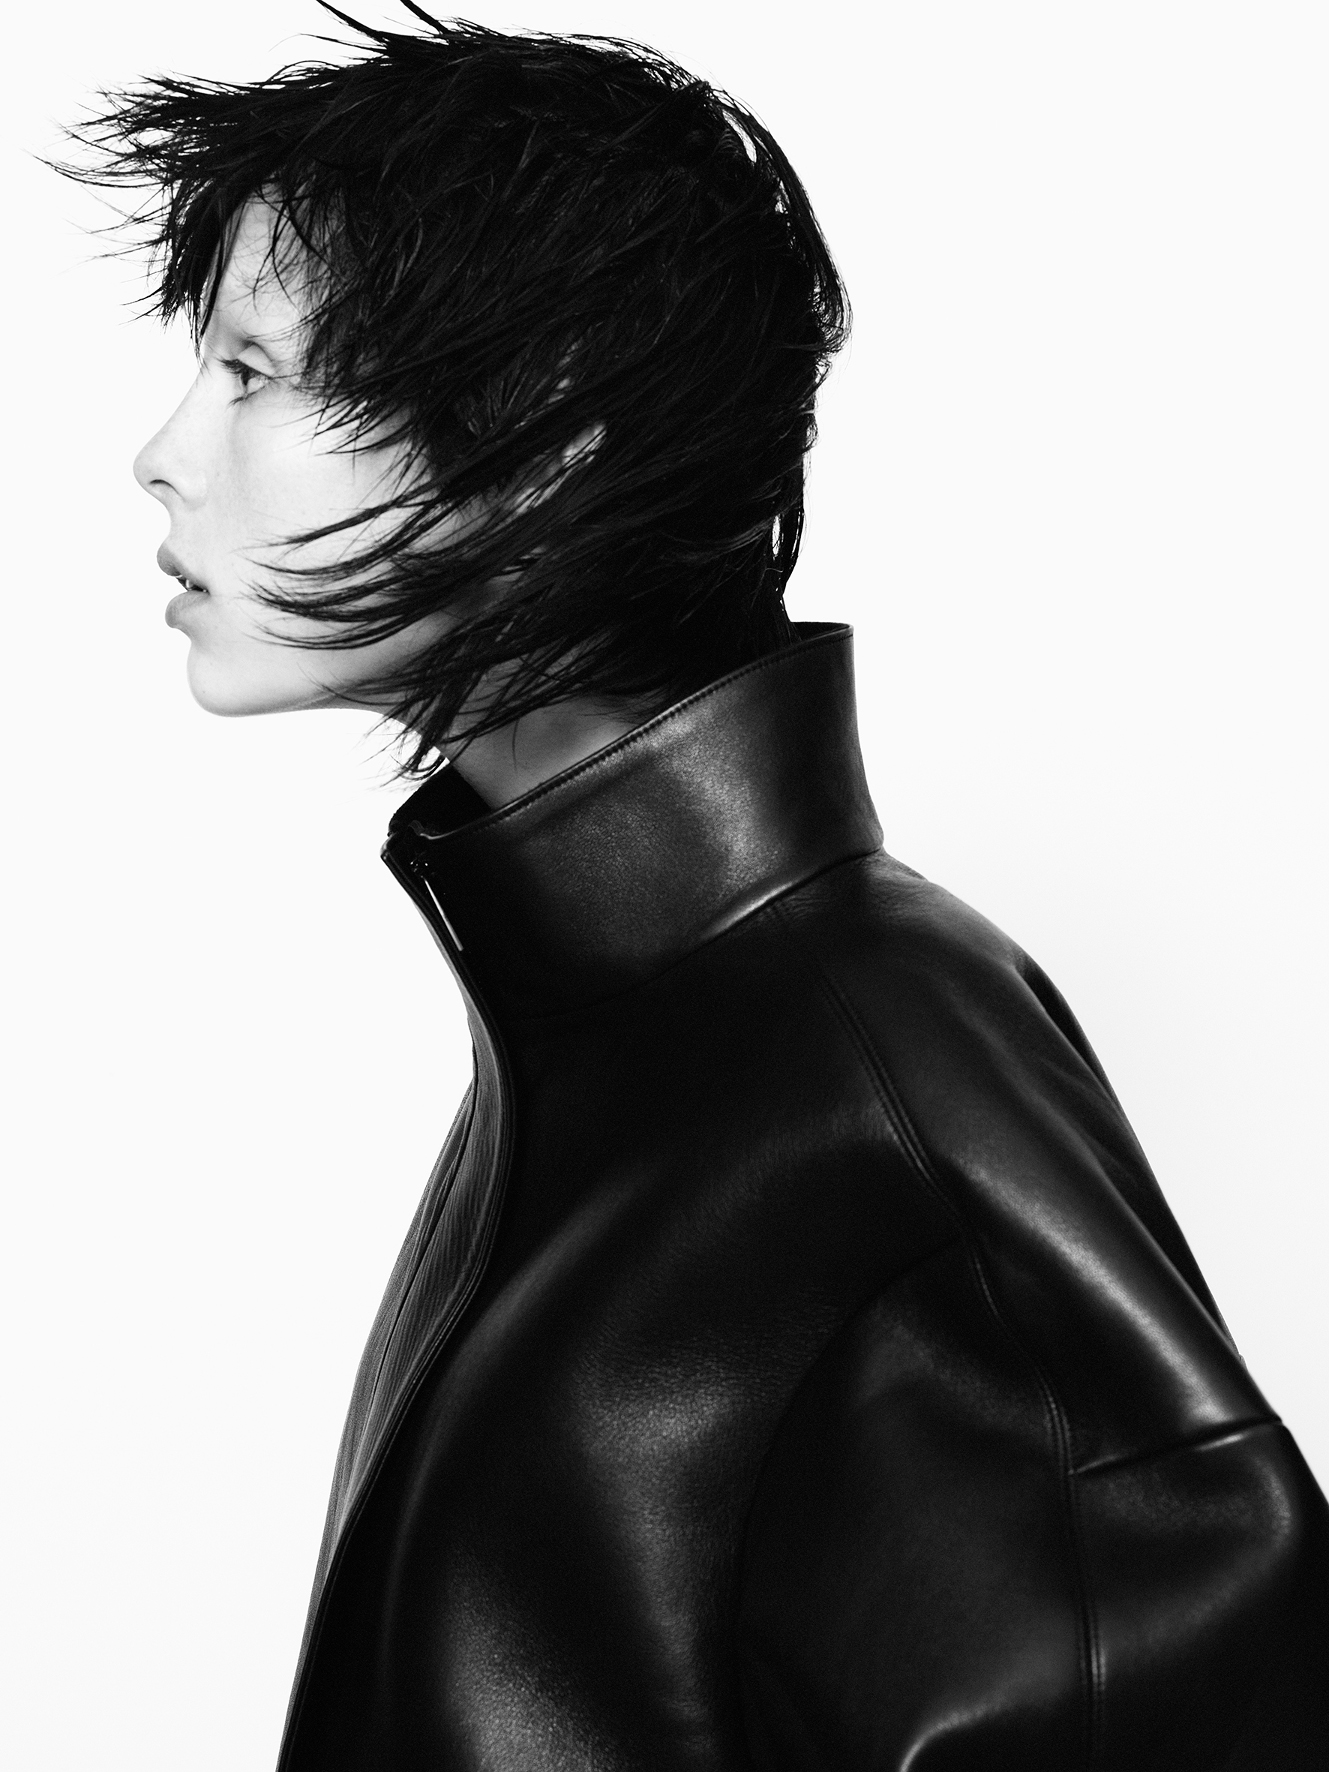 Jil Sander Kampagne Herbst-Winter 2013/2014 Model: Edie Campbell © David Sims